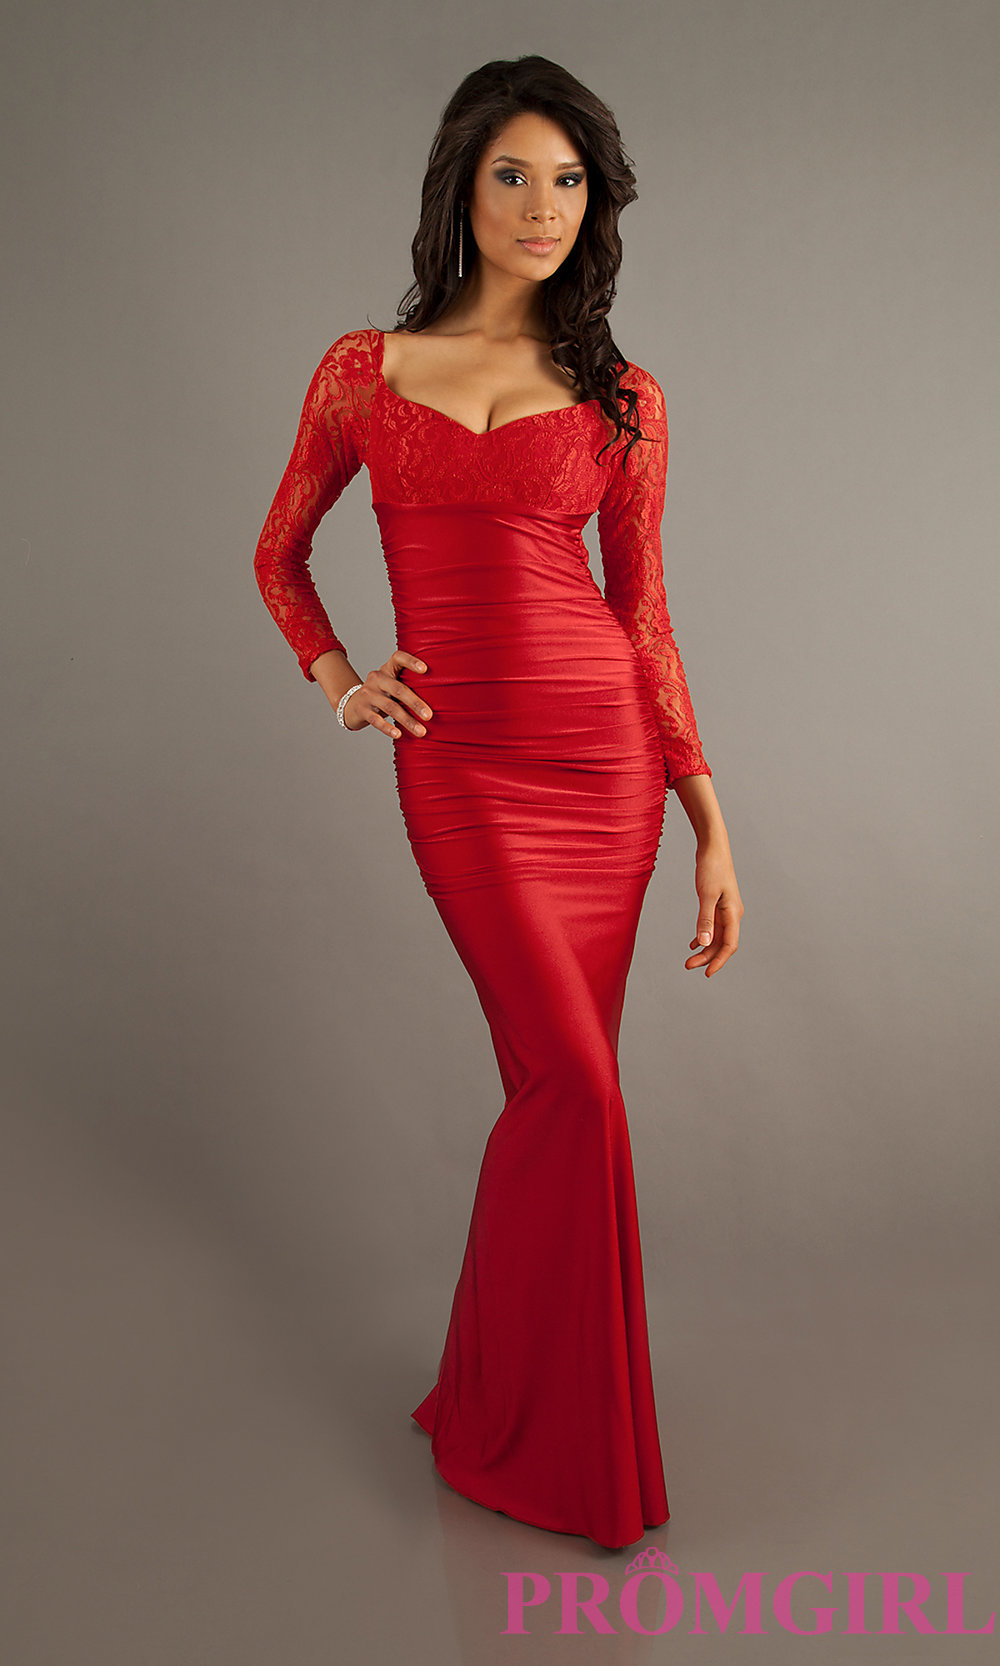 Find great deals on eBay for long red lace dress. Shop with confidence.